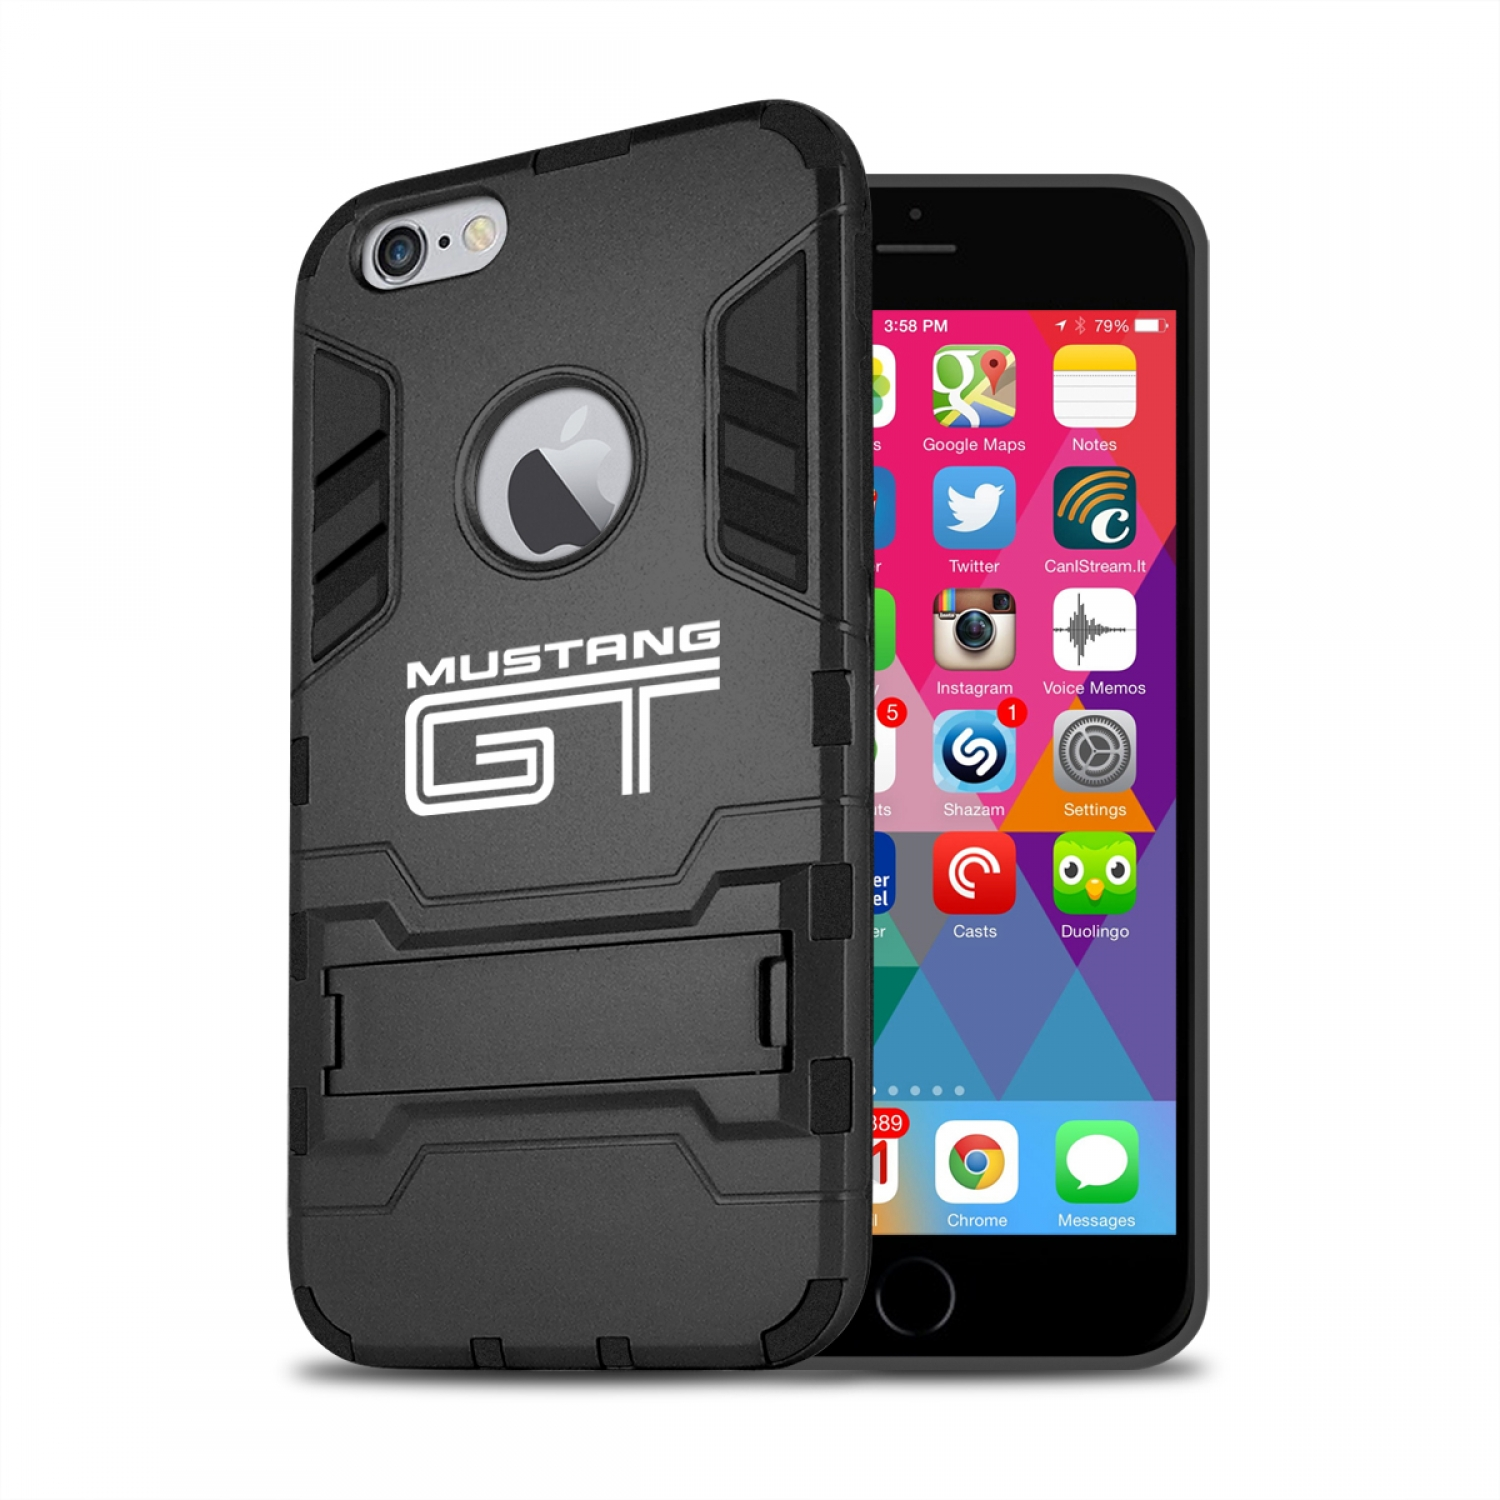 Ford Mustang GT iPhone 6 6s Shockproof TPU ABS Hybrid Black Phone Case